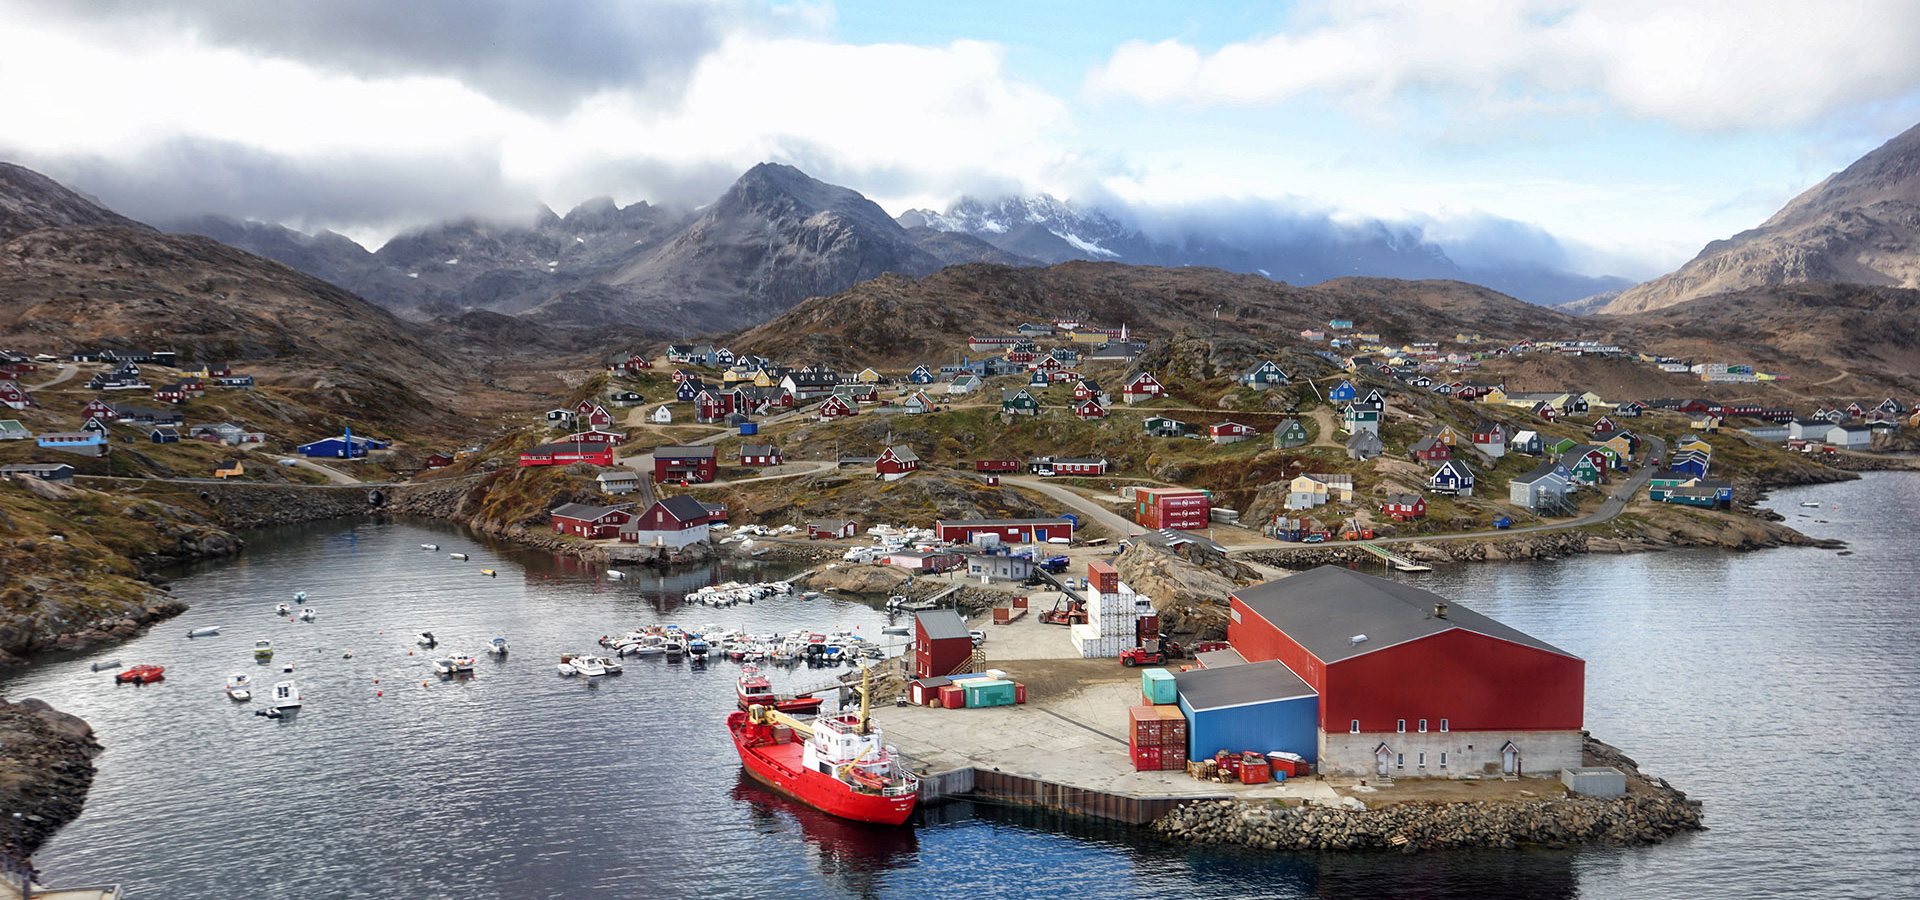 The Red House - Eastgreenland - Politik - Wirtschaft